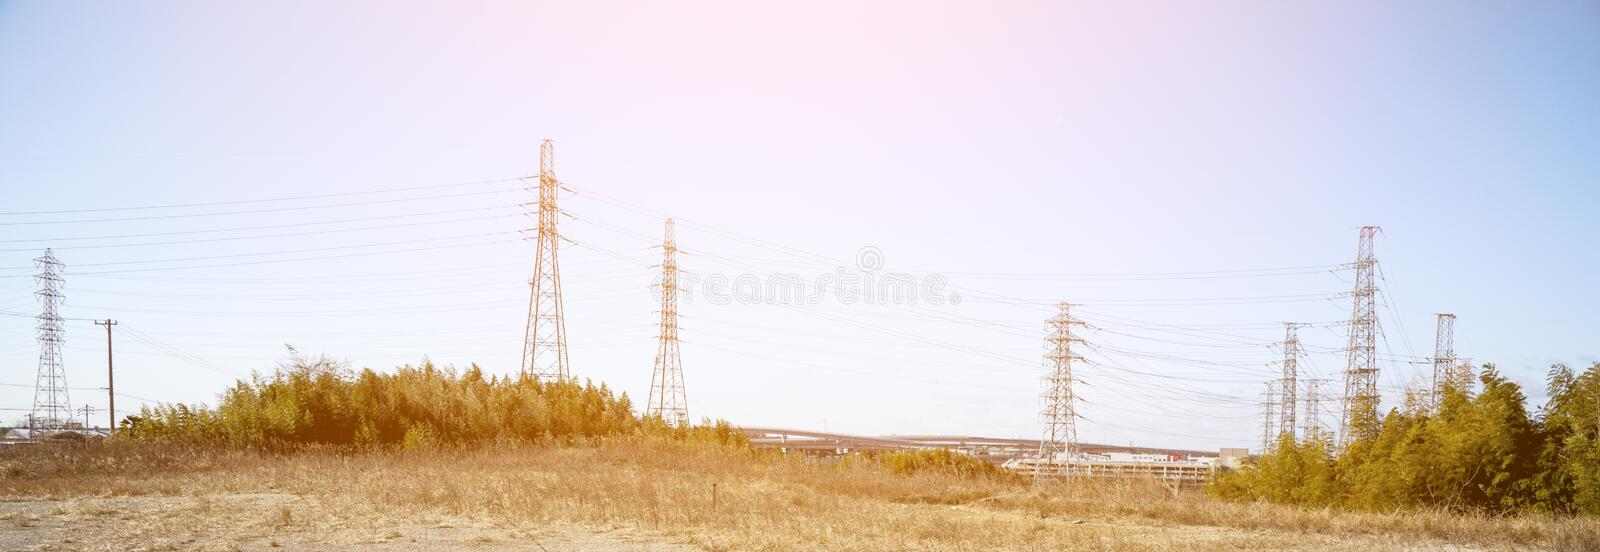 Power line in nature with sun light, wide screen, Technology and nature concept stock photos